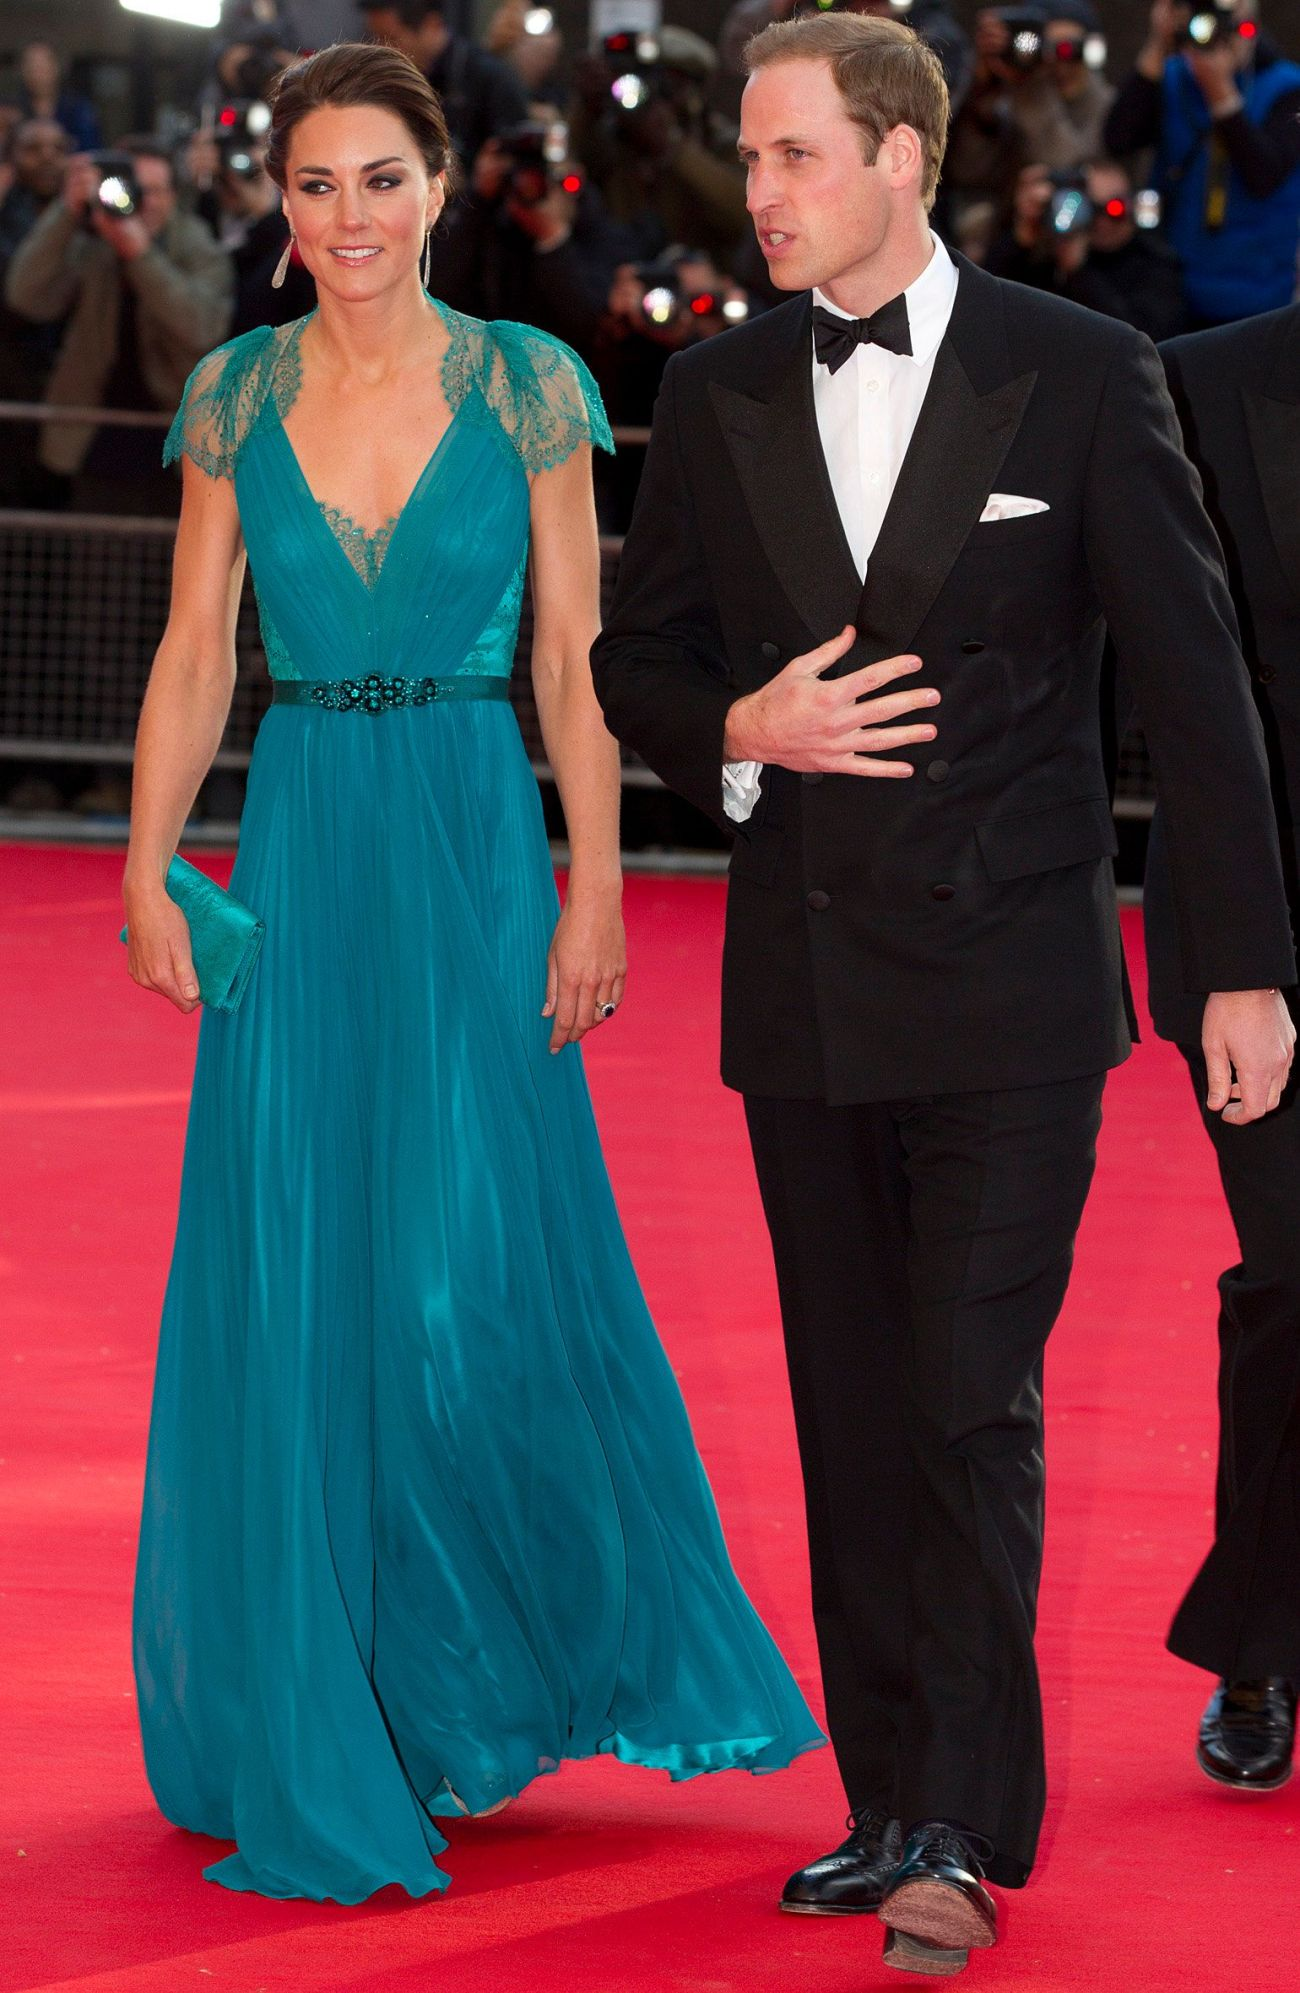 Kate and William arrive at the Royal Albert Hall for a British Olympic Team gala event in London on May 11, 2012.